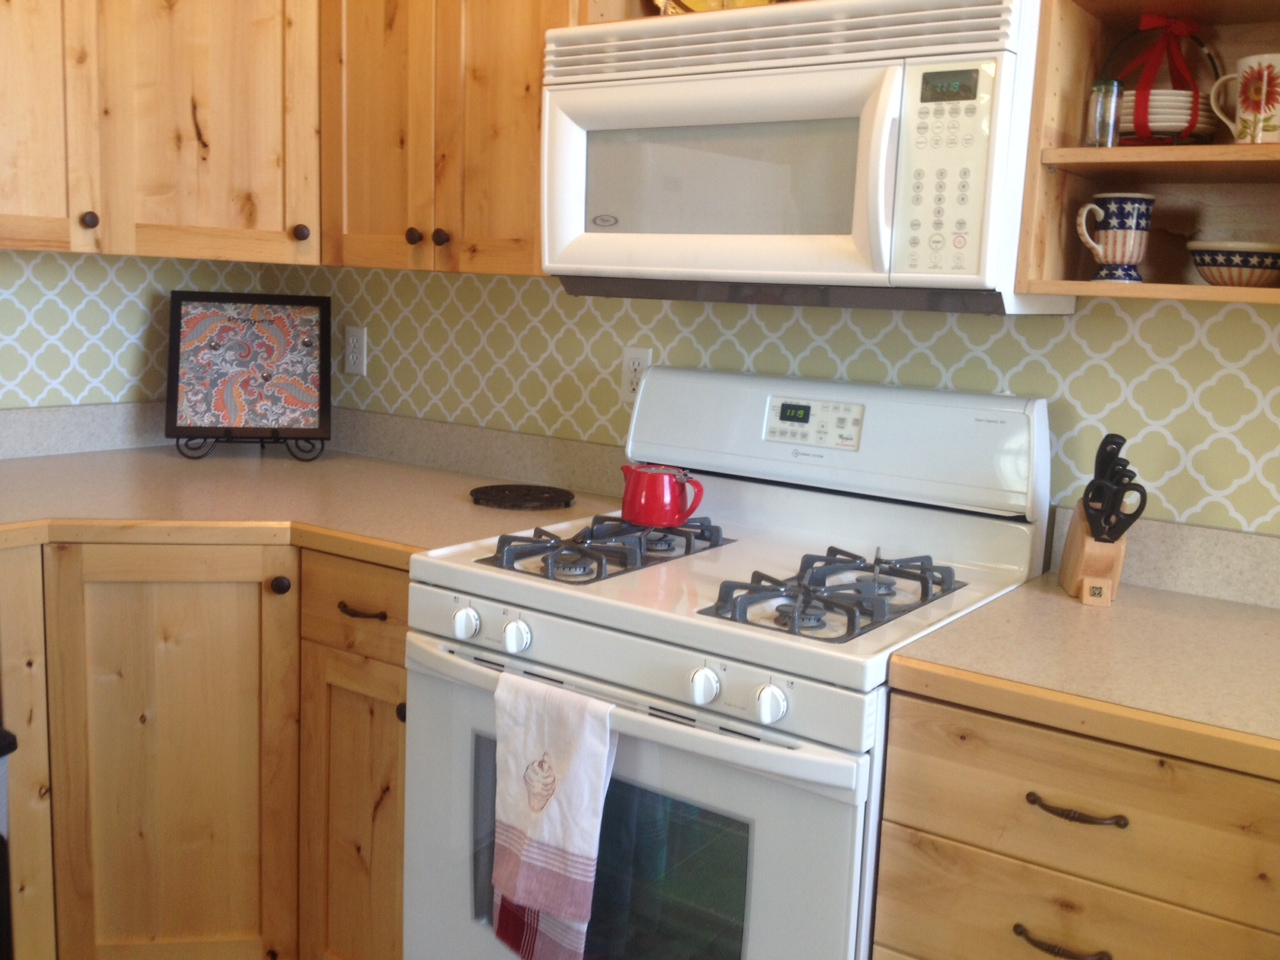 Kitchen Wallpaper Backsplash 5 Decor Ideas Enhancedhomesorg Wallpaper Backsplash Kitchen